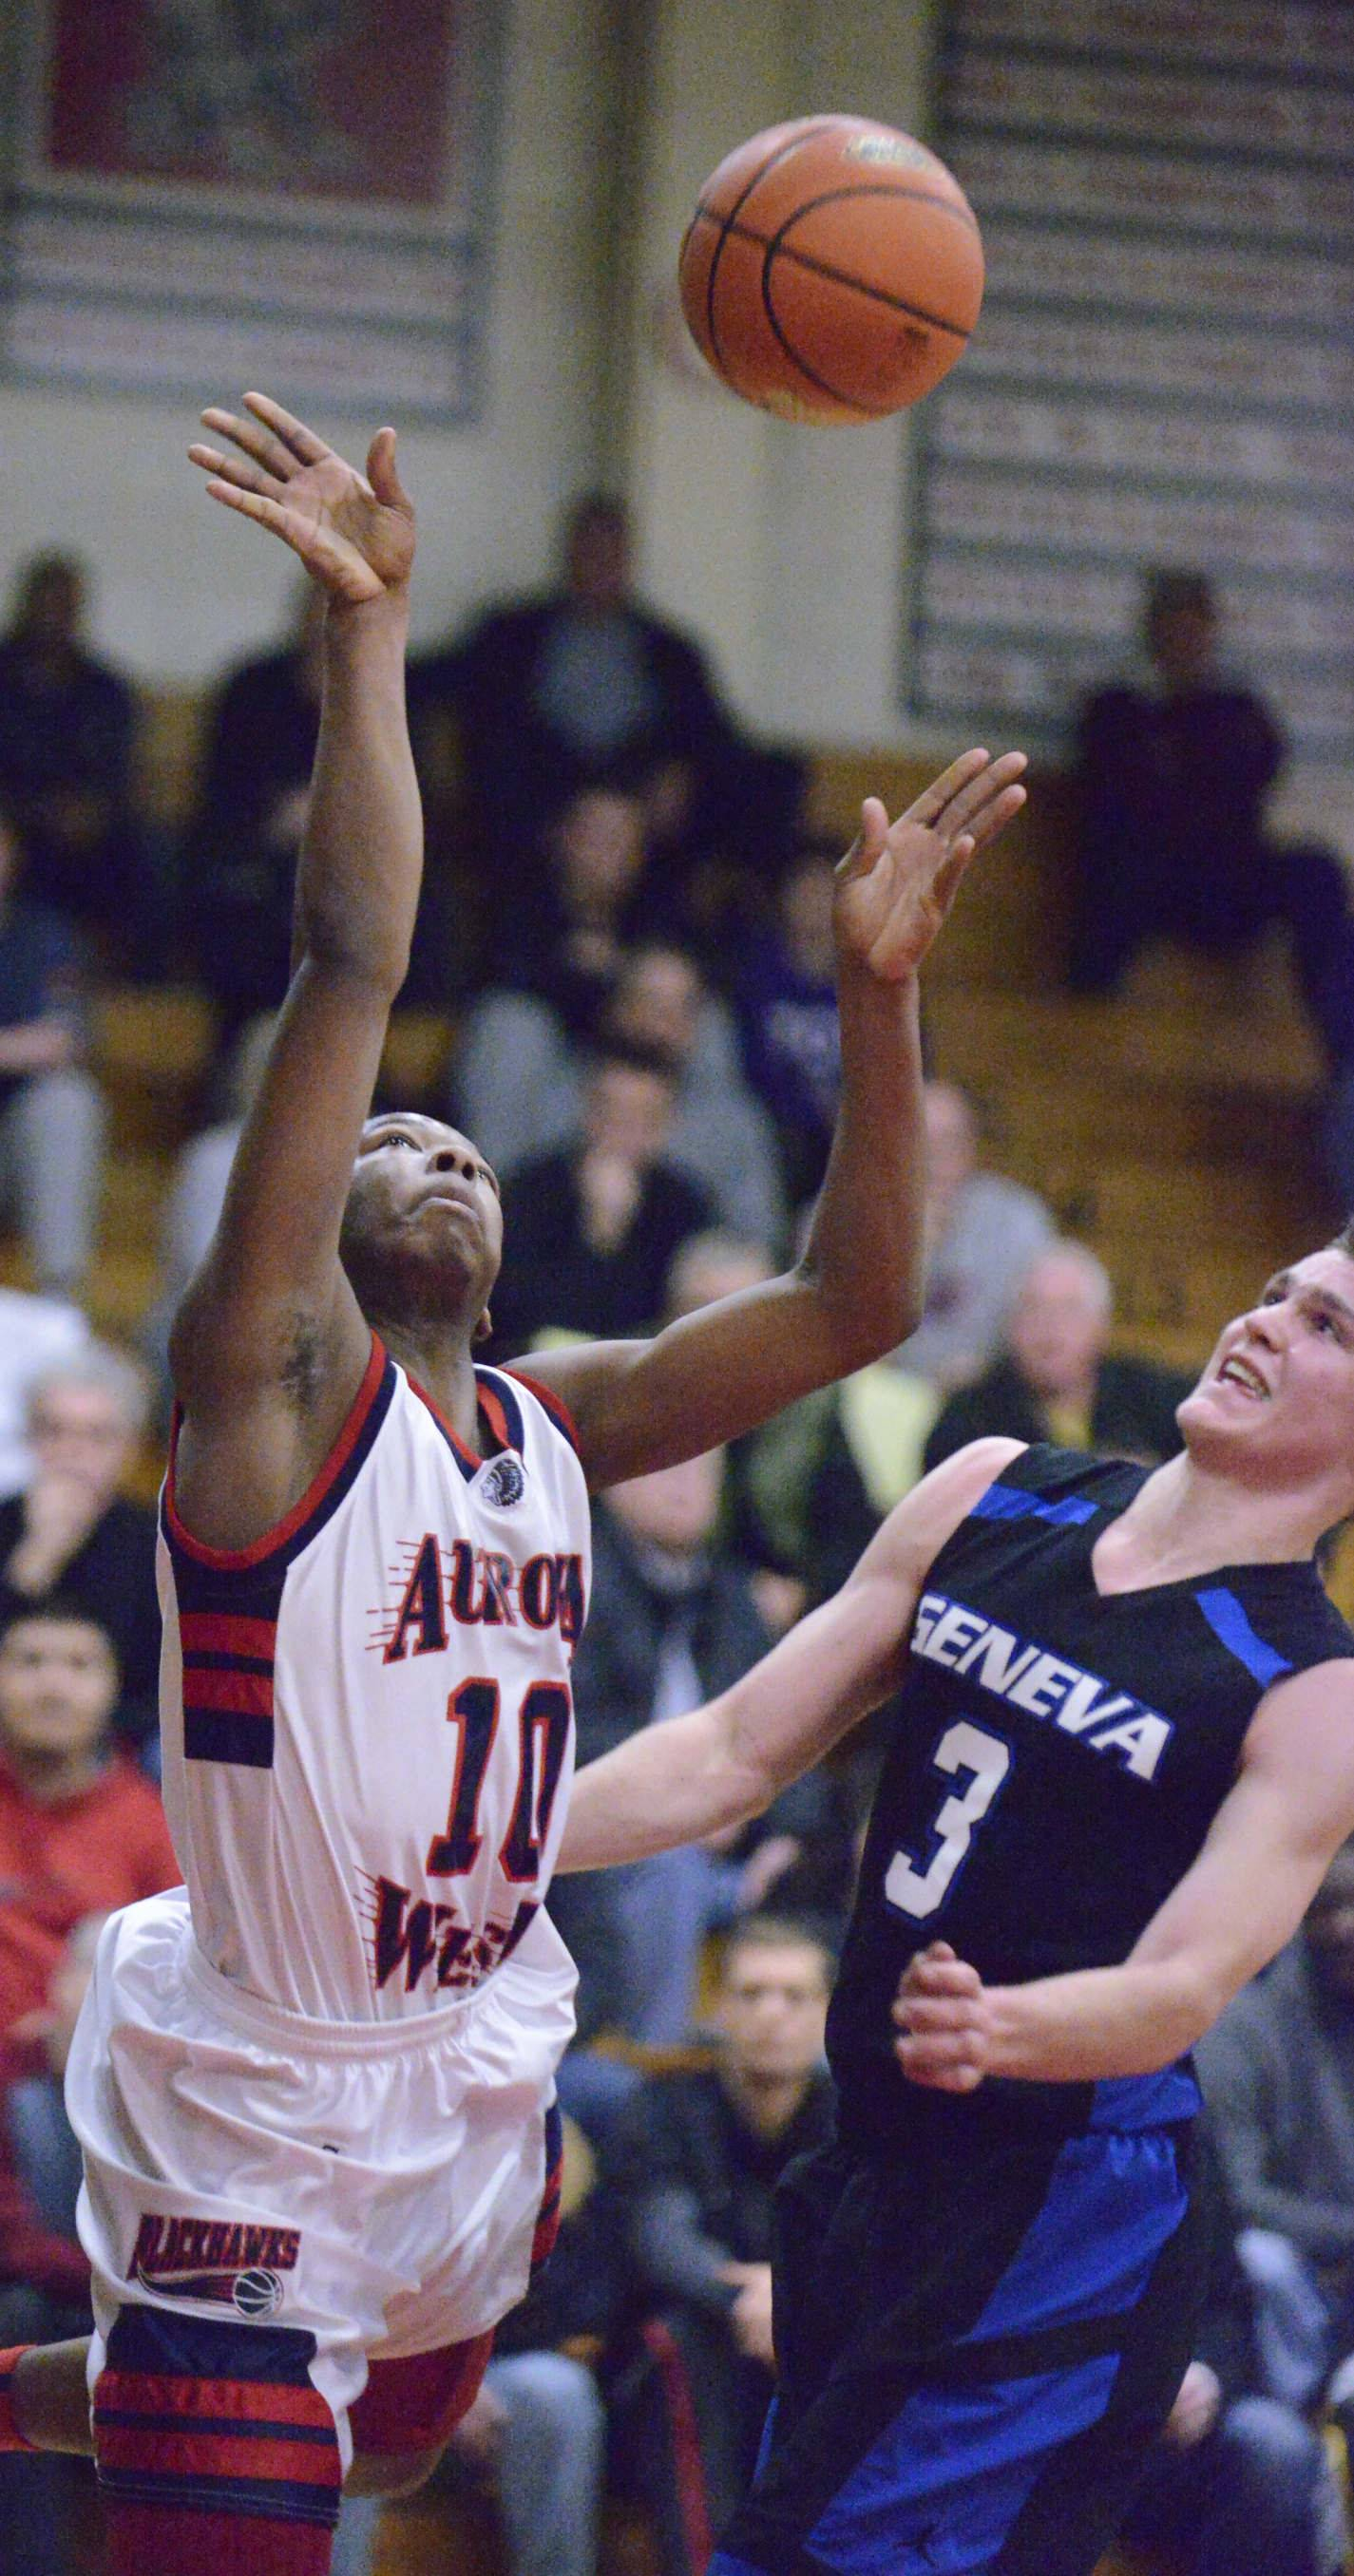 Images from the West Aurora vs. Geneva sectional semifinal boys basketball game Wednesday, March 12, 2014 in Aurora.